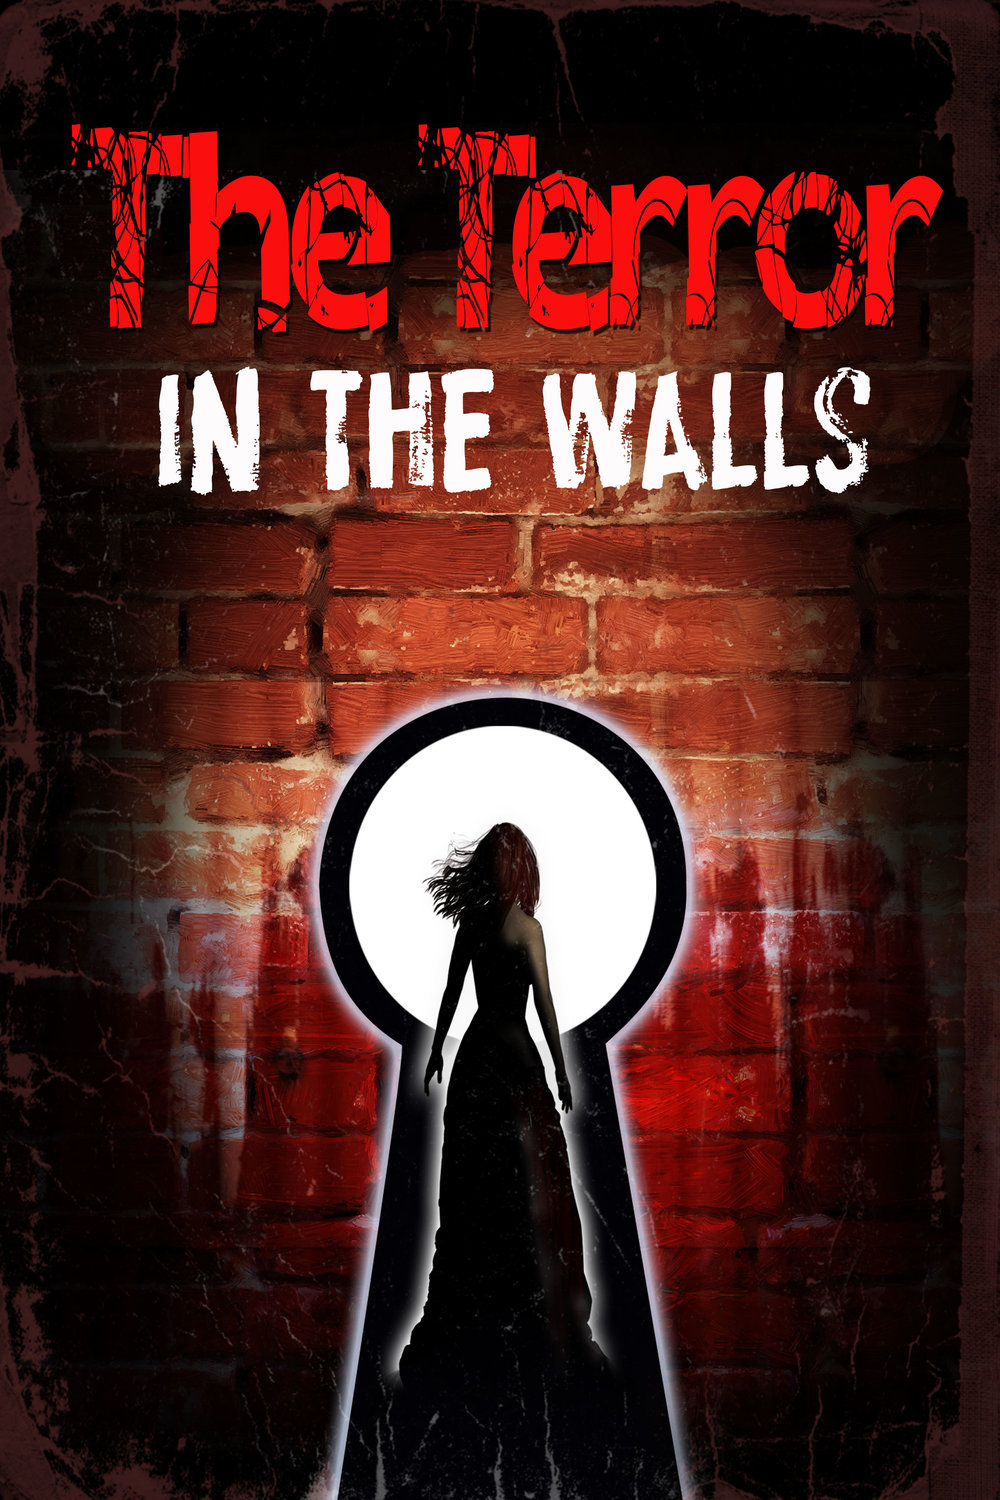 The Terror in the Walls - Three friends spend their gap year in a quiet old house to work on their art, but are they truly alone?